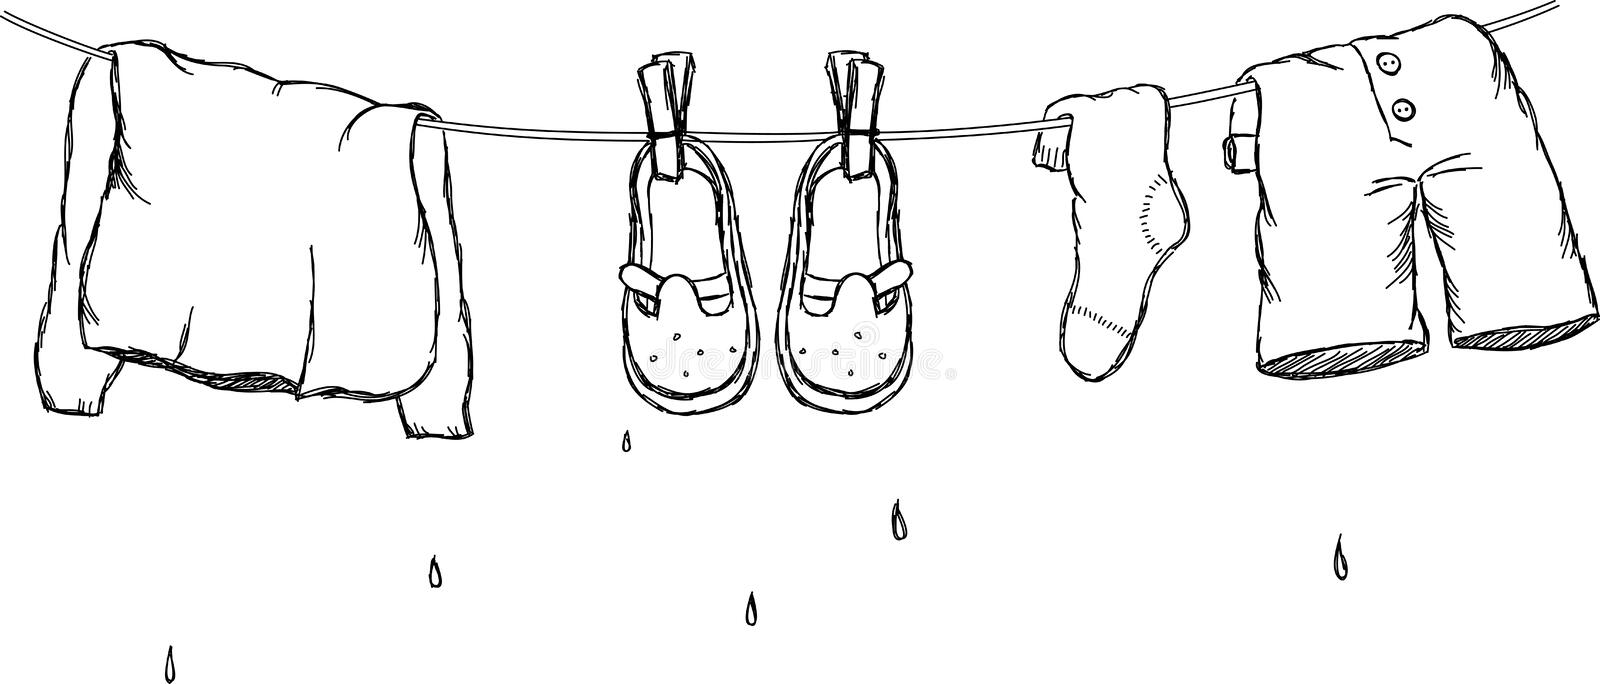 Laundry Outdoor Stock Illustrations – 340 Laundry Outdoor